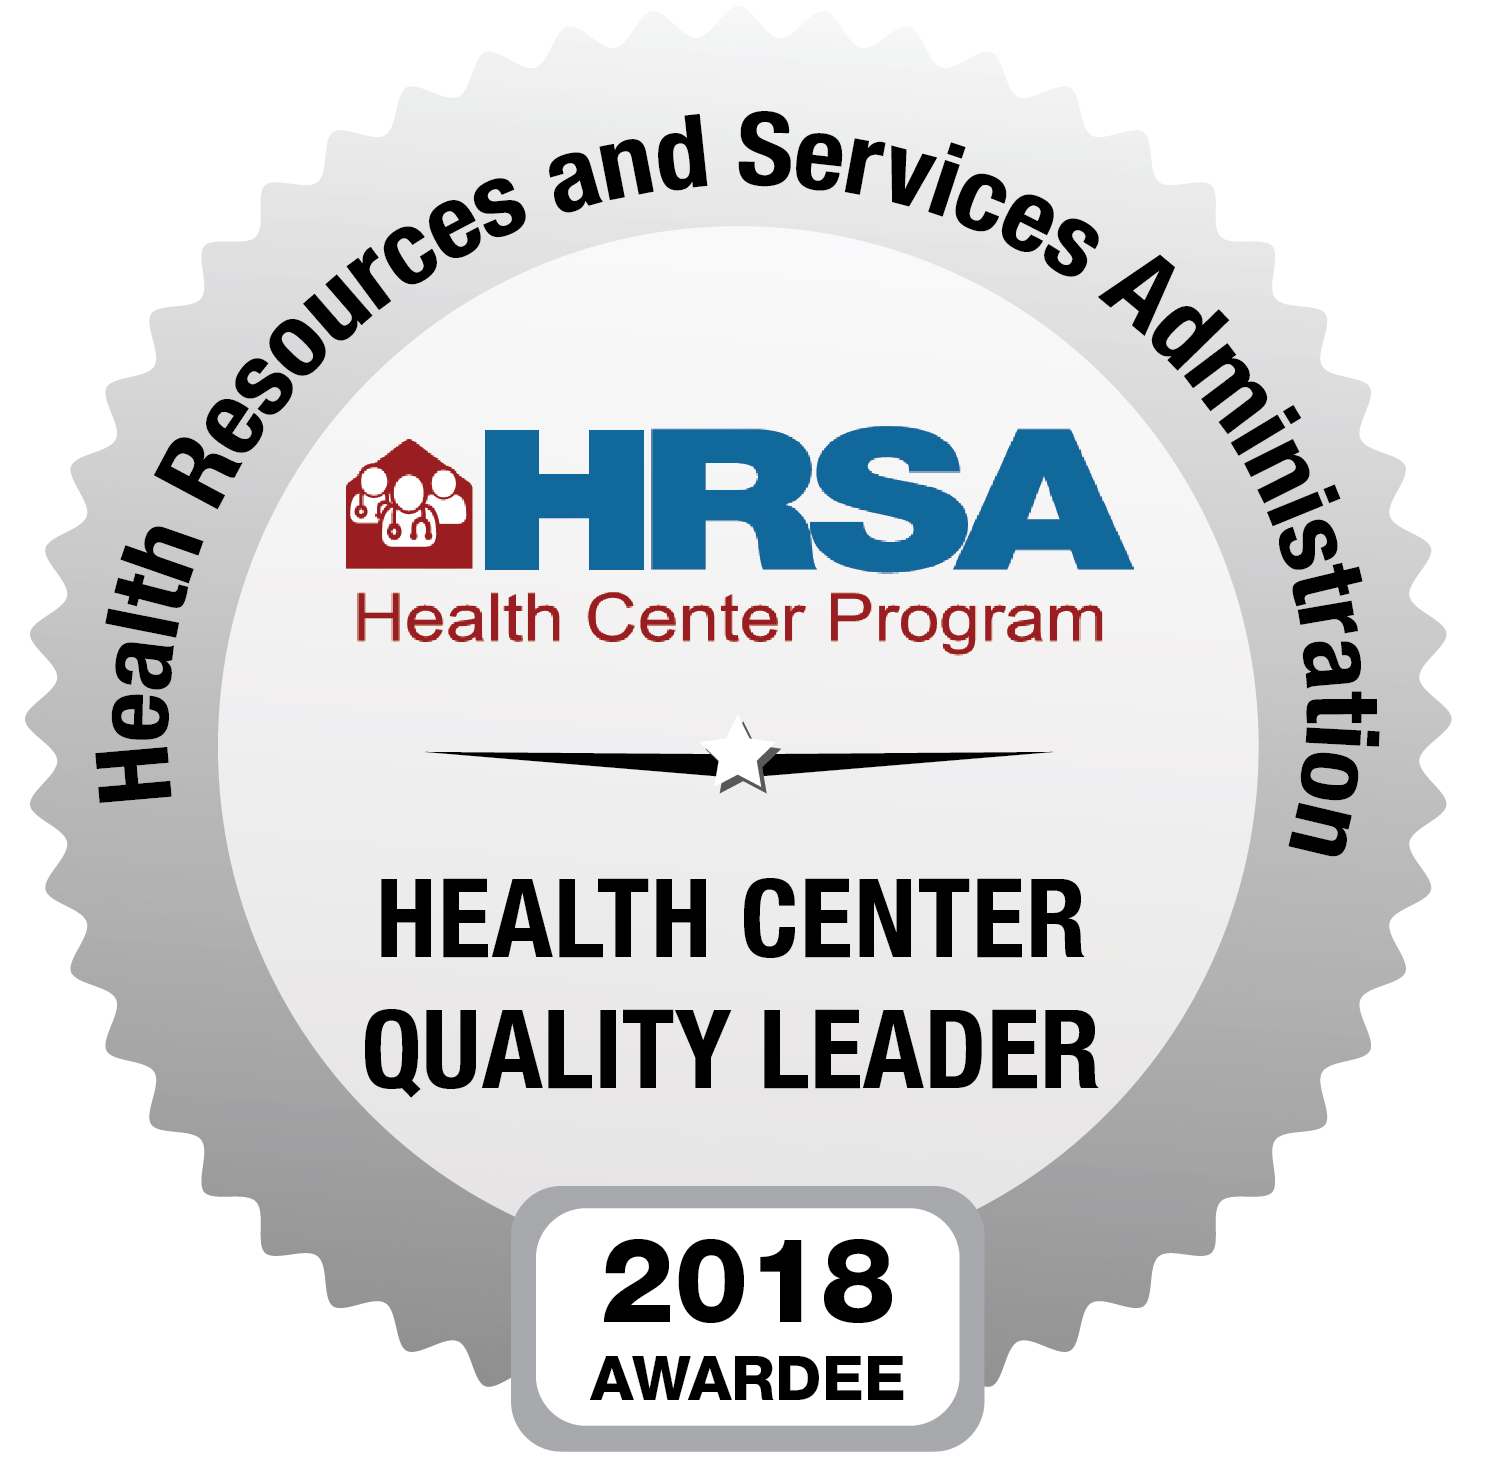 2018 Health Center Quality Leader